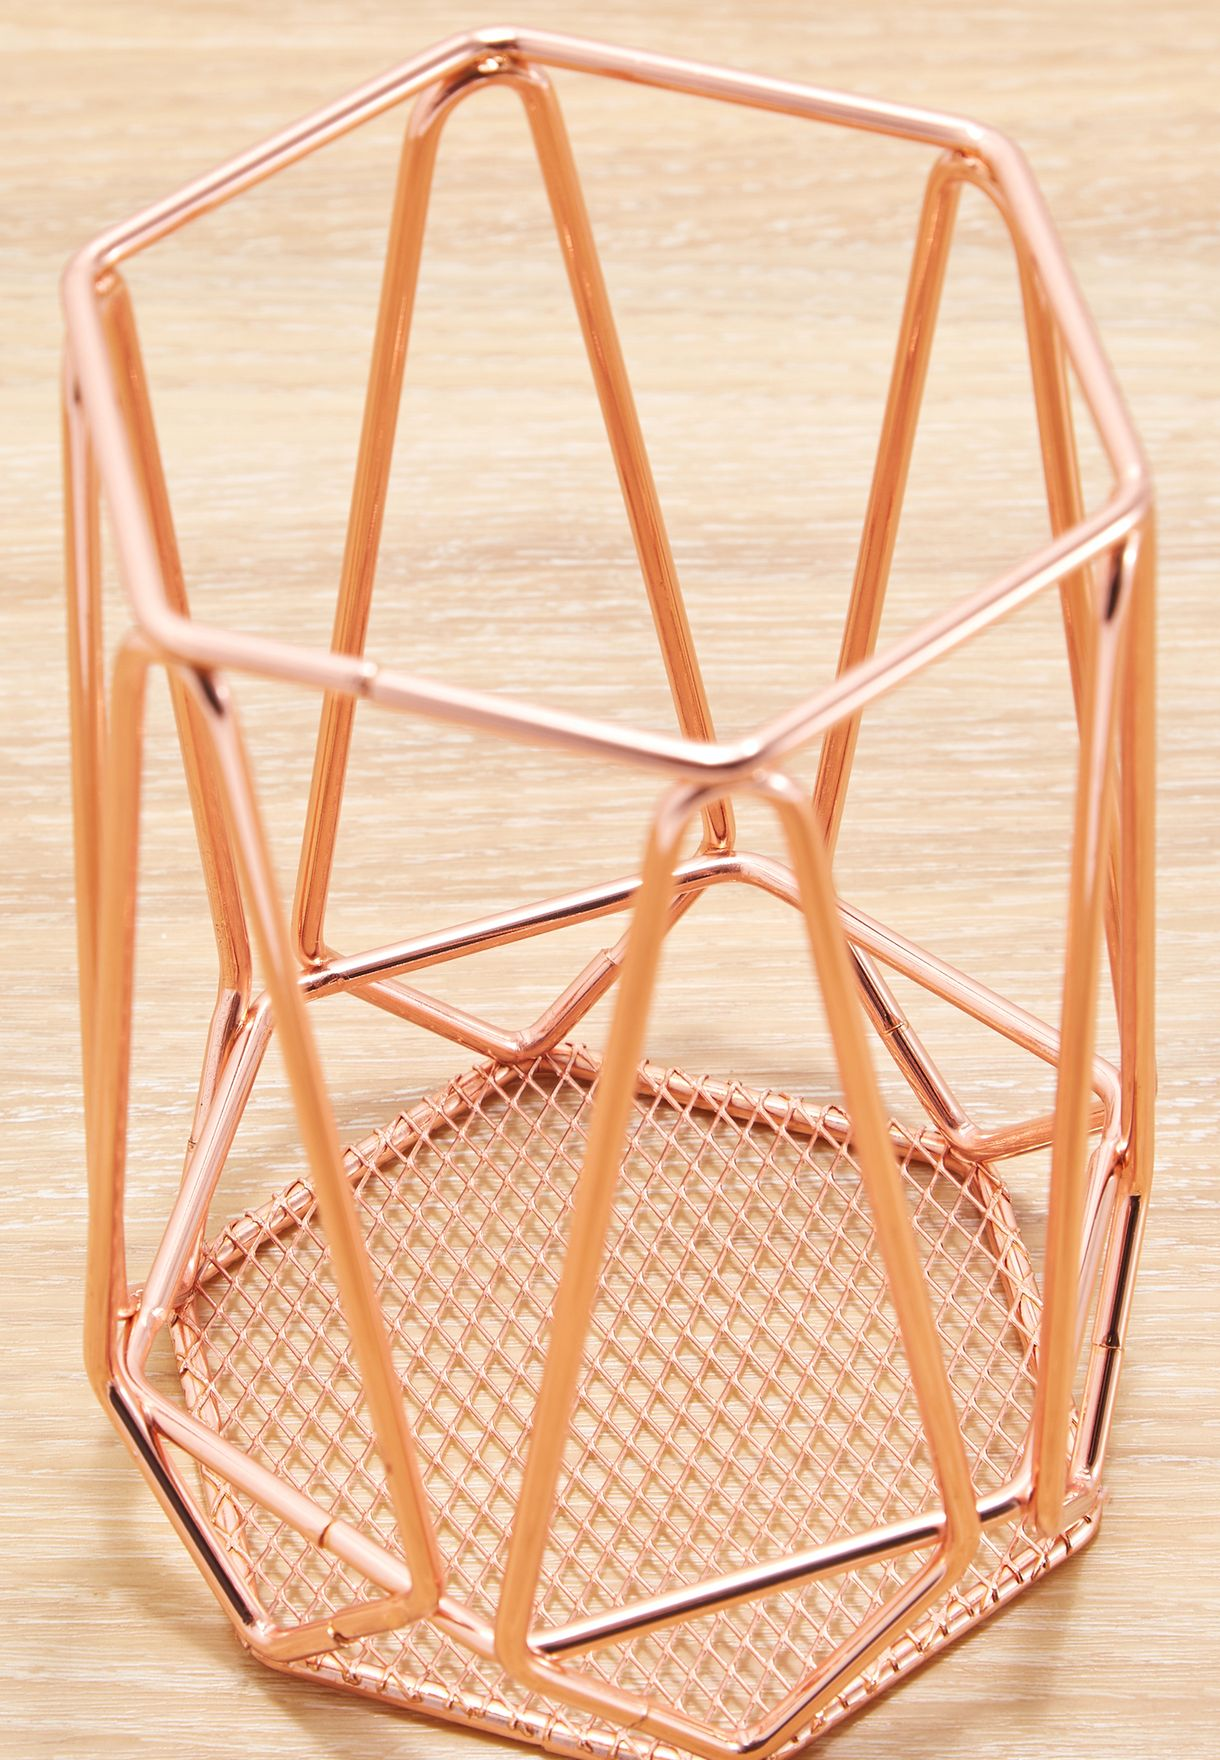 Vertex Utensil Holder